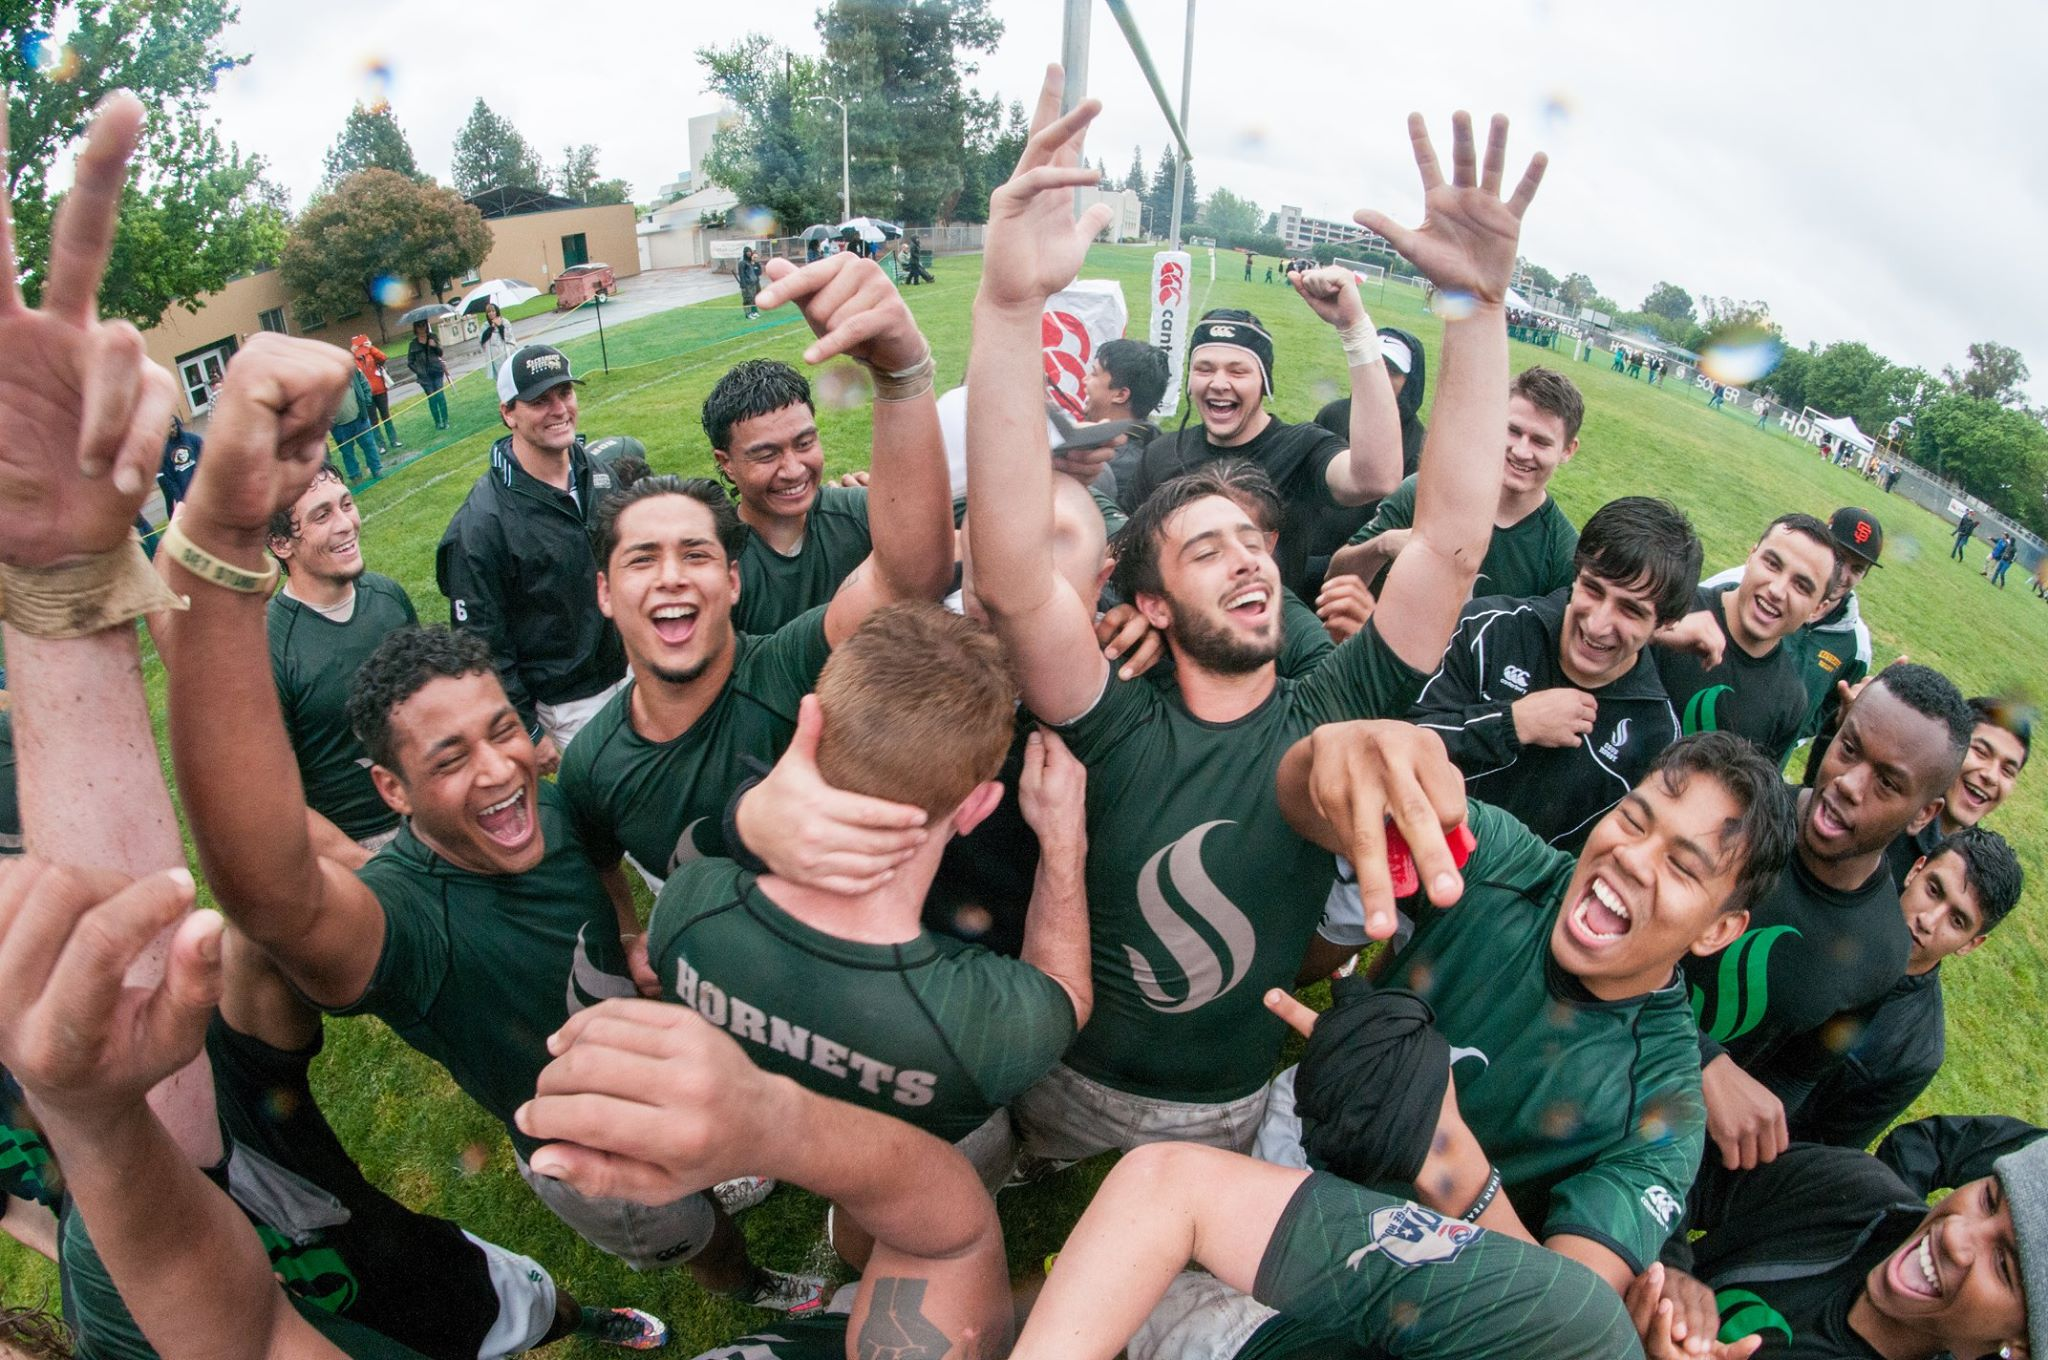 Sac State Rugby considers itself at team before anything else.